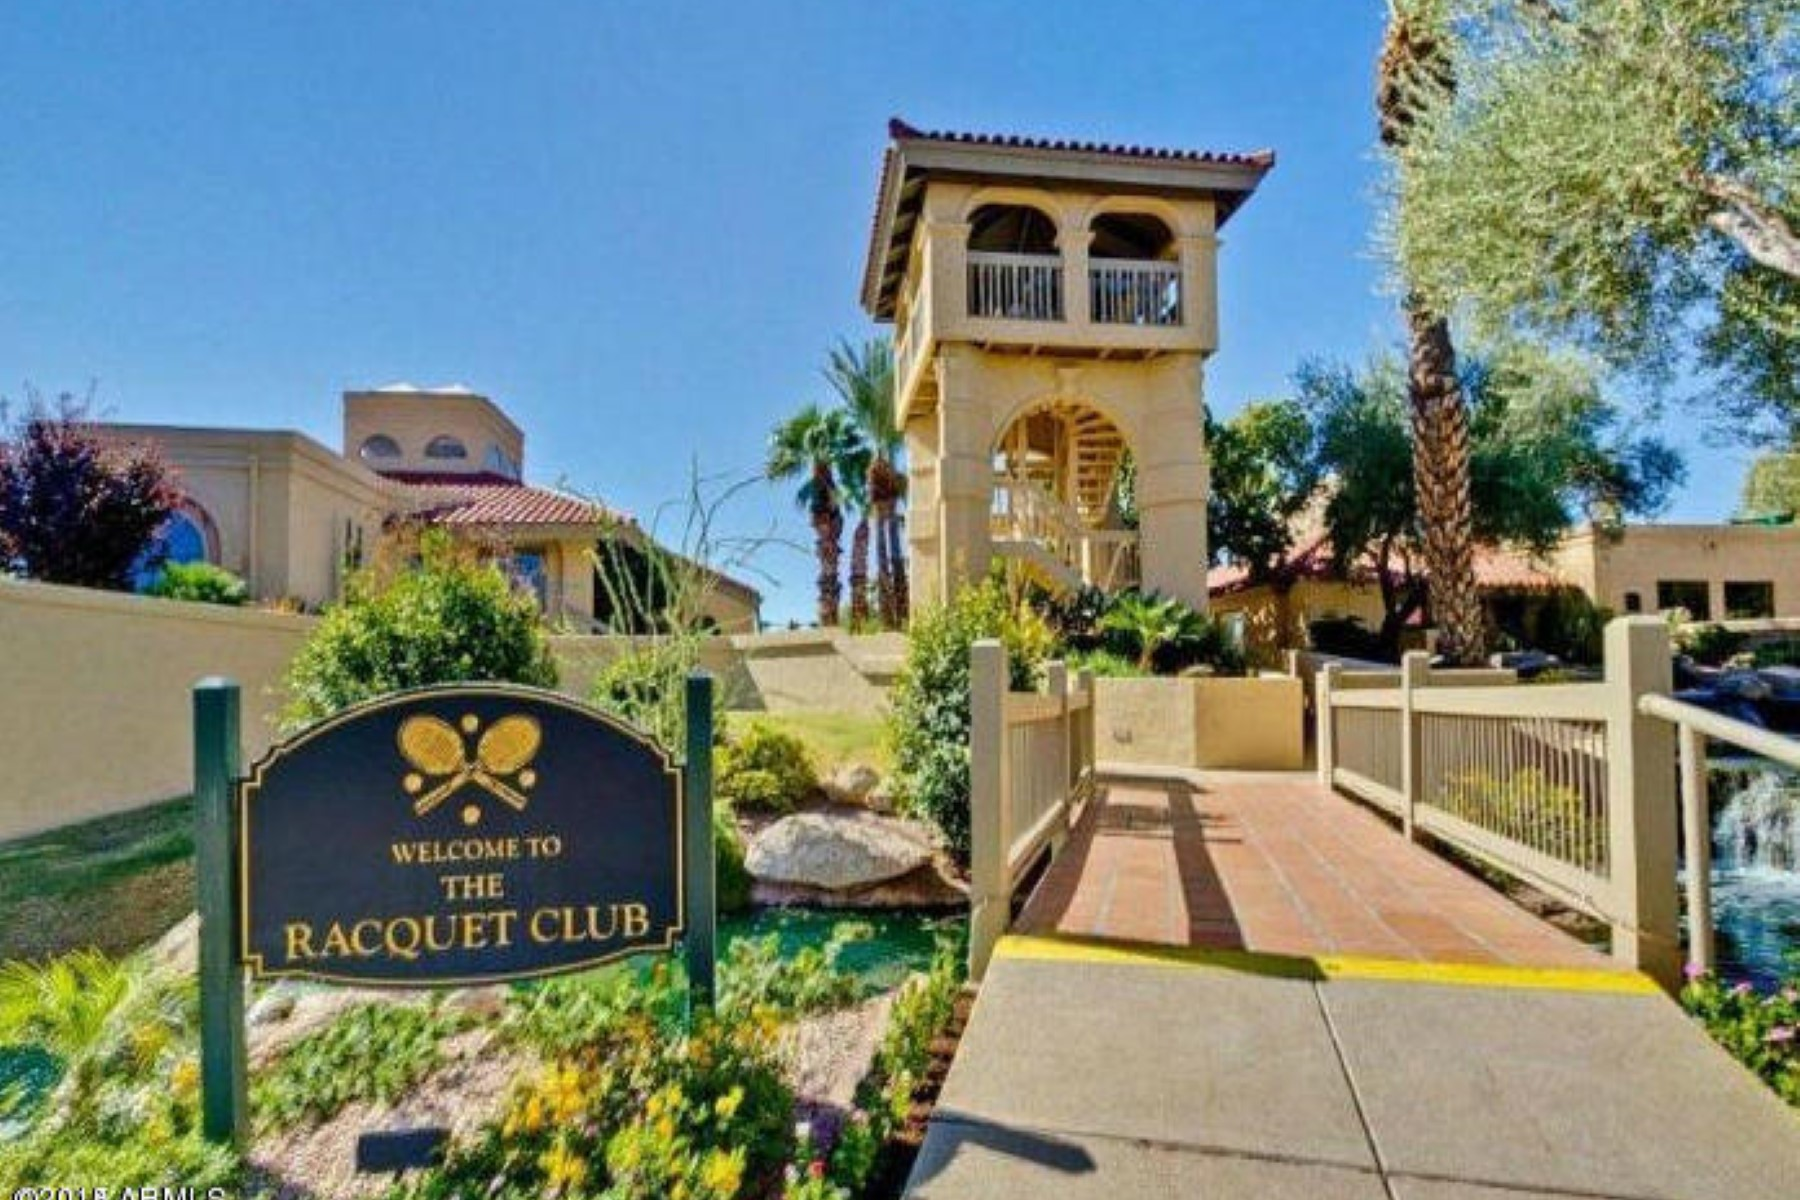 Townhouse for Sale at Fully remodeled resort style living condo in Scottsdale Ranch 9705 E MOUNTAIN VIEW RD 1007 Scottsdale, Arizona 85258 United States